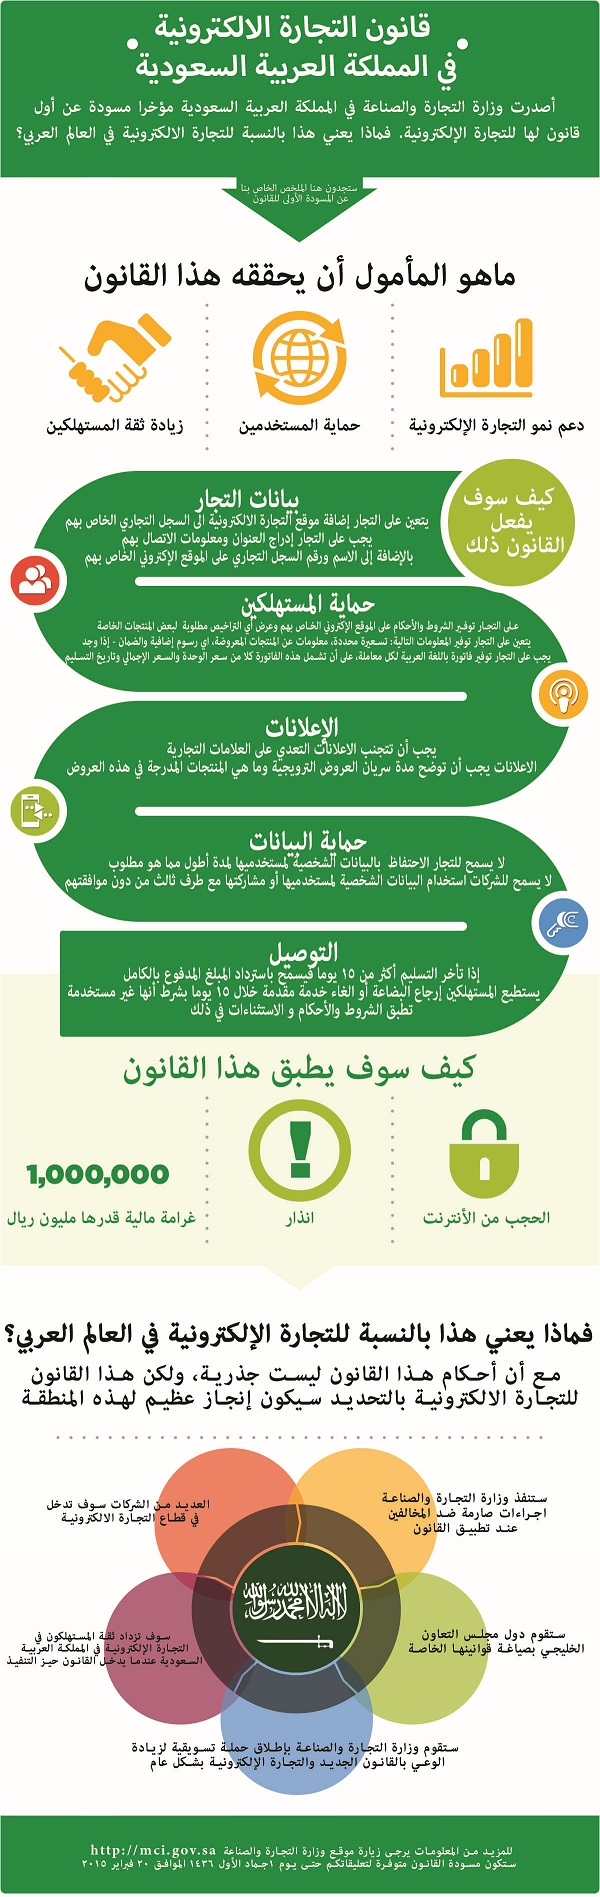 Saudi-Ecommerce-Law-AR-final